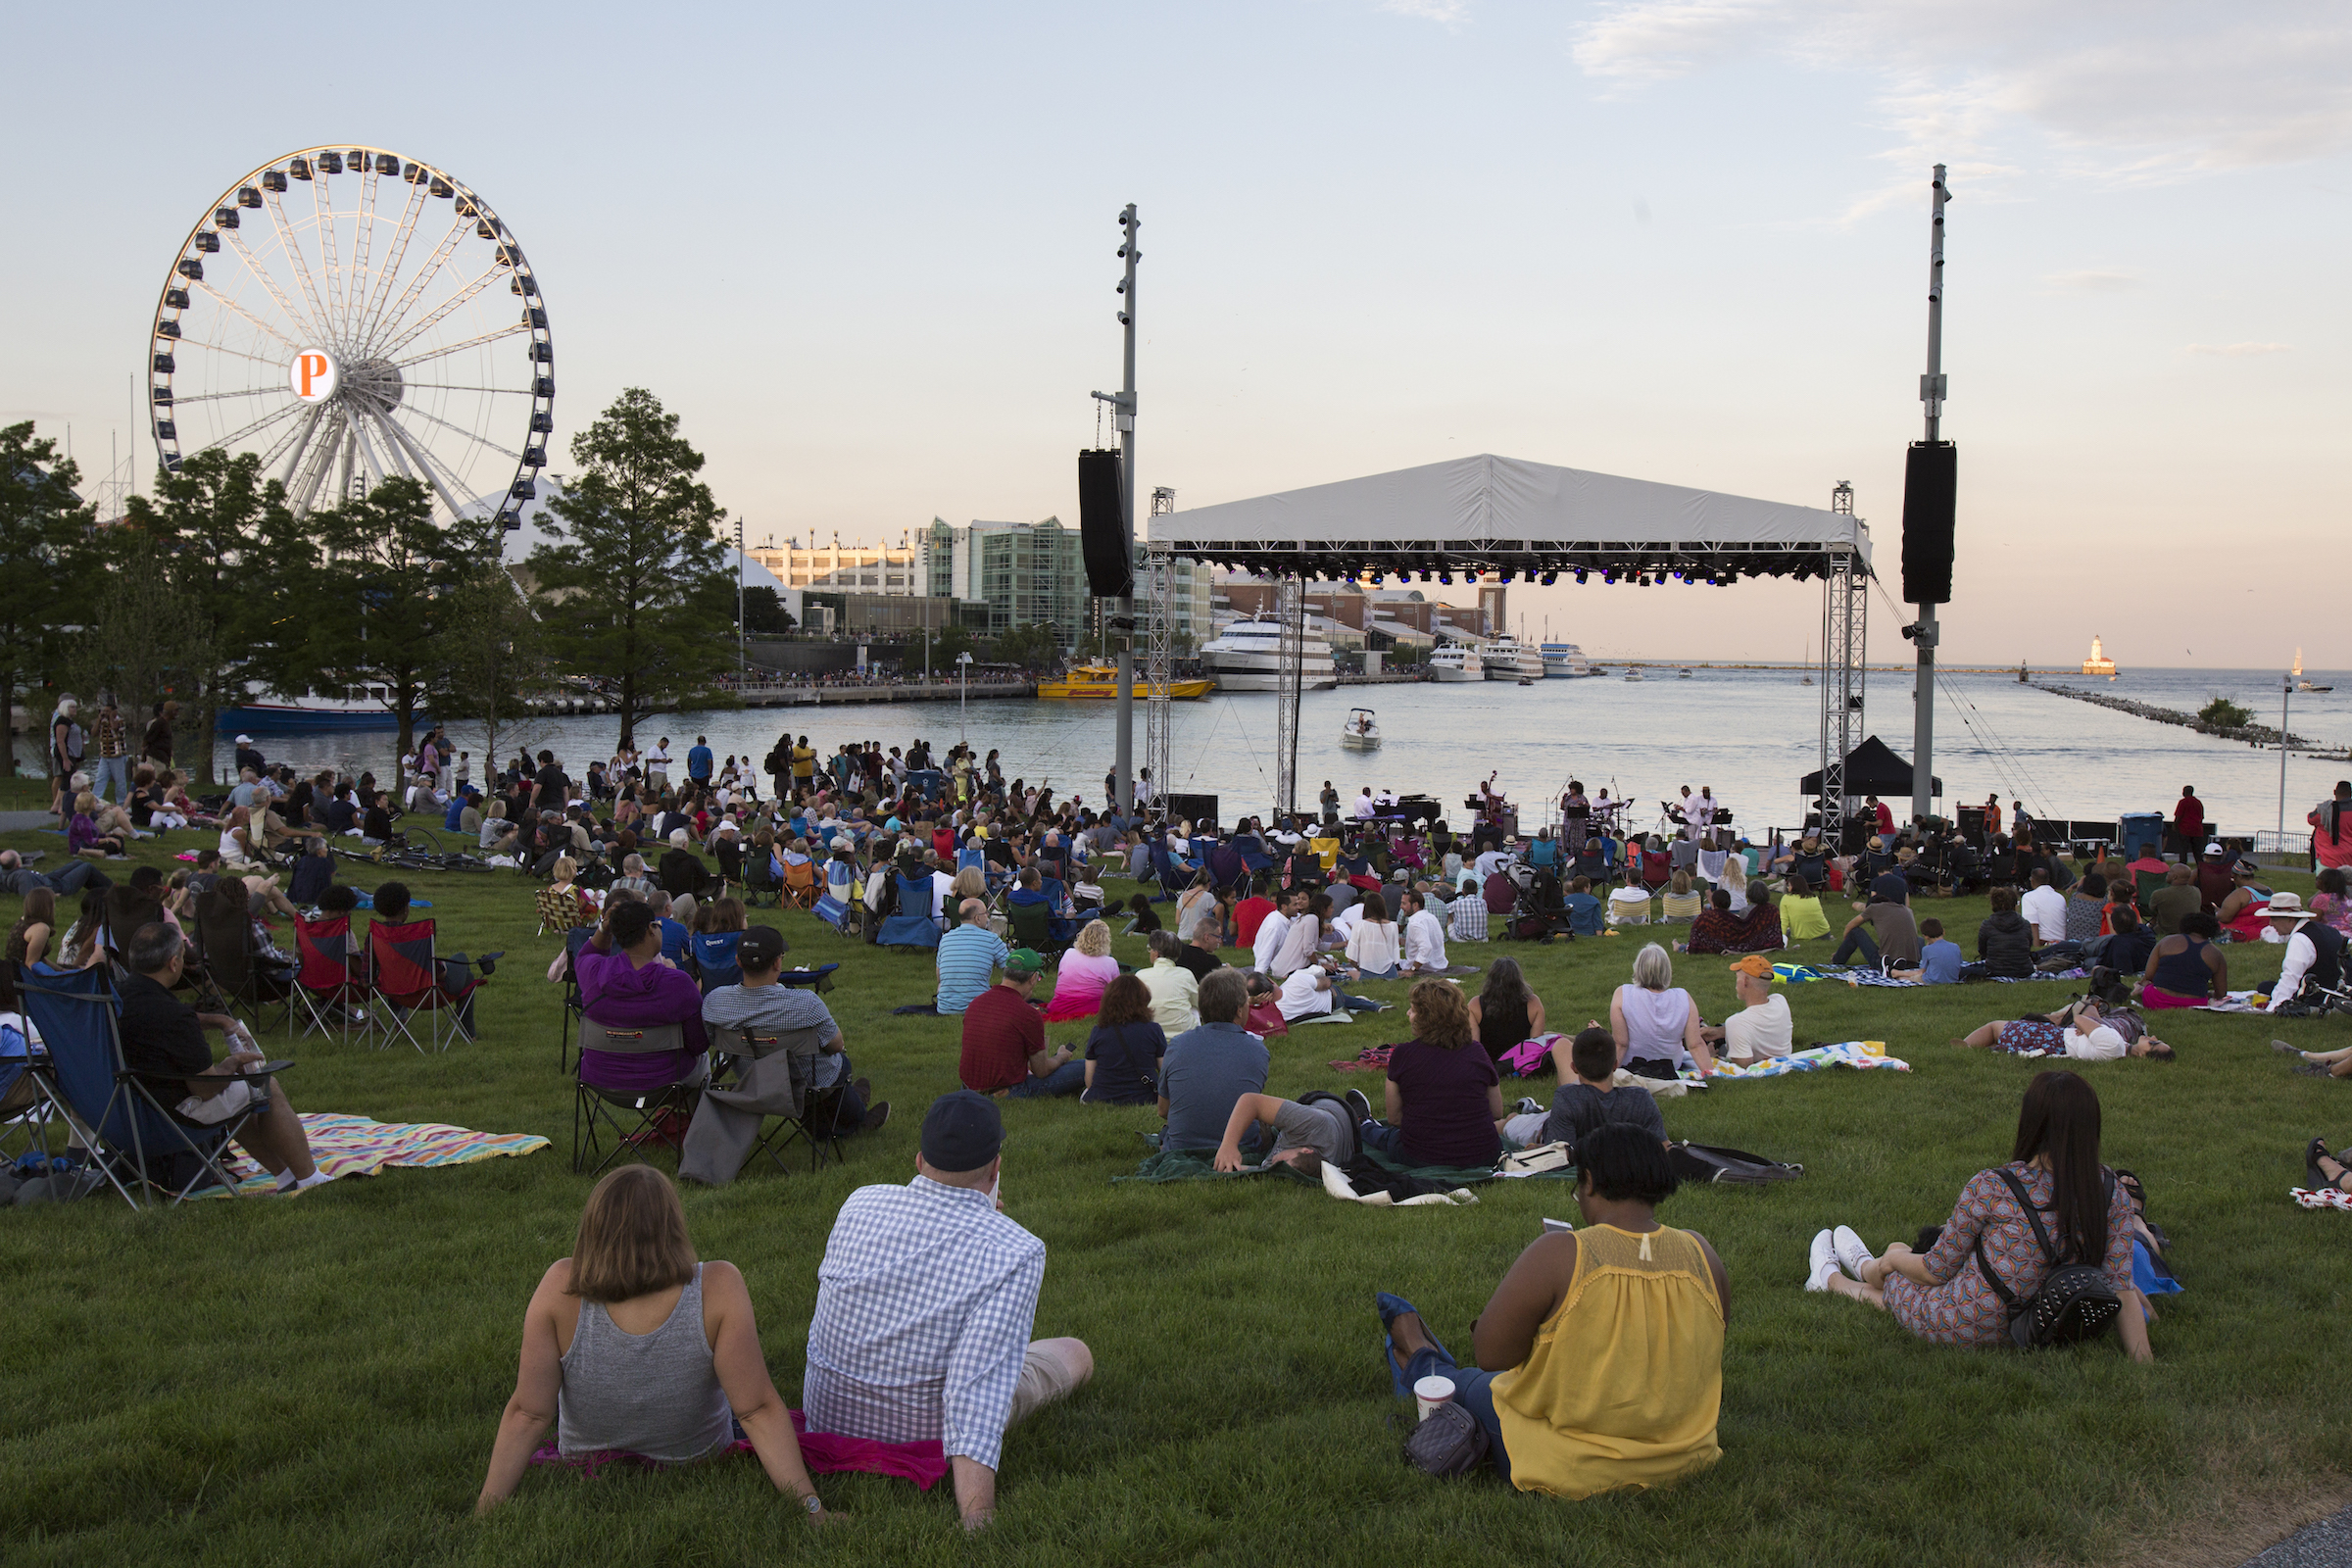 Navy Pier is moving forward with outdoor movie screenings and concerts this summer